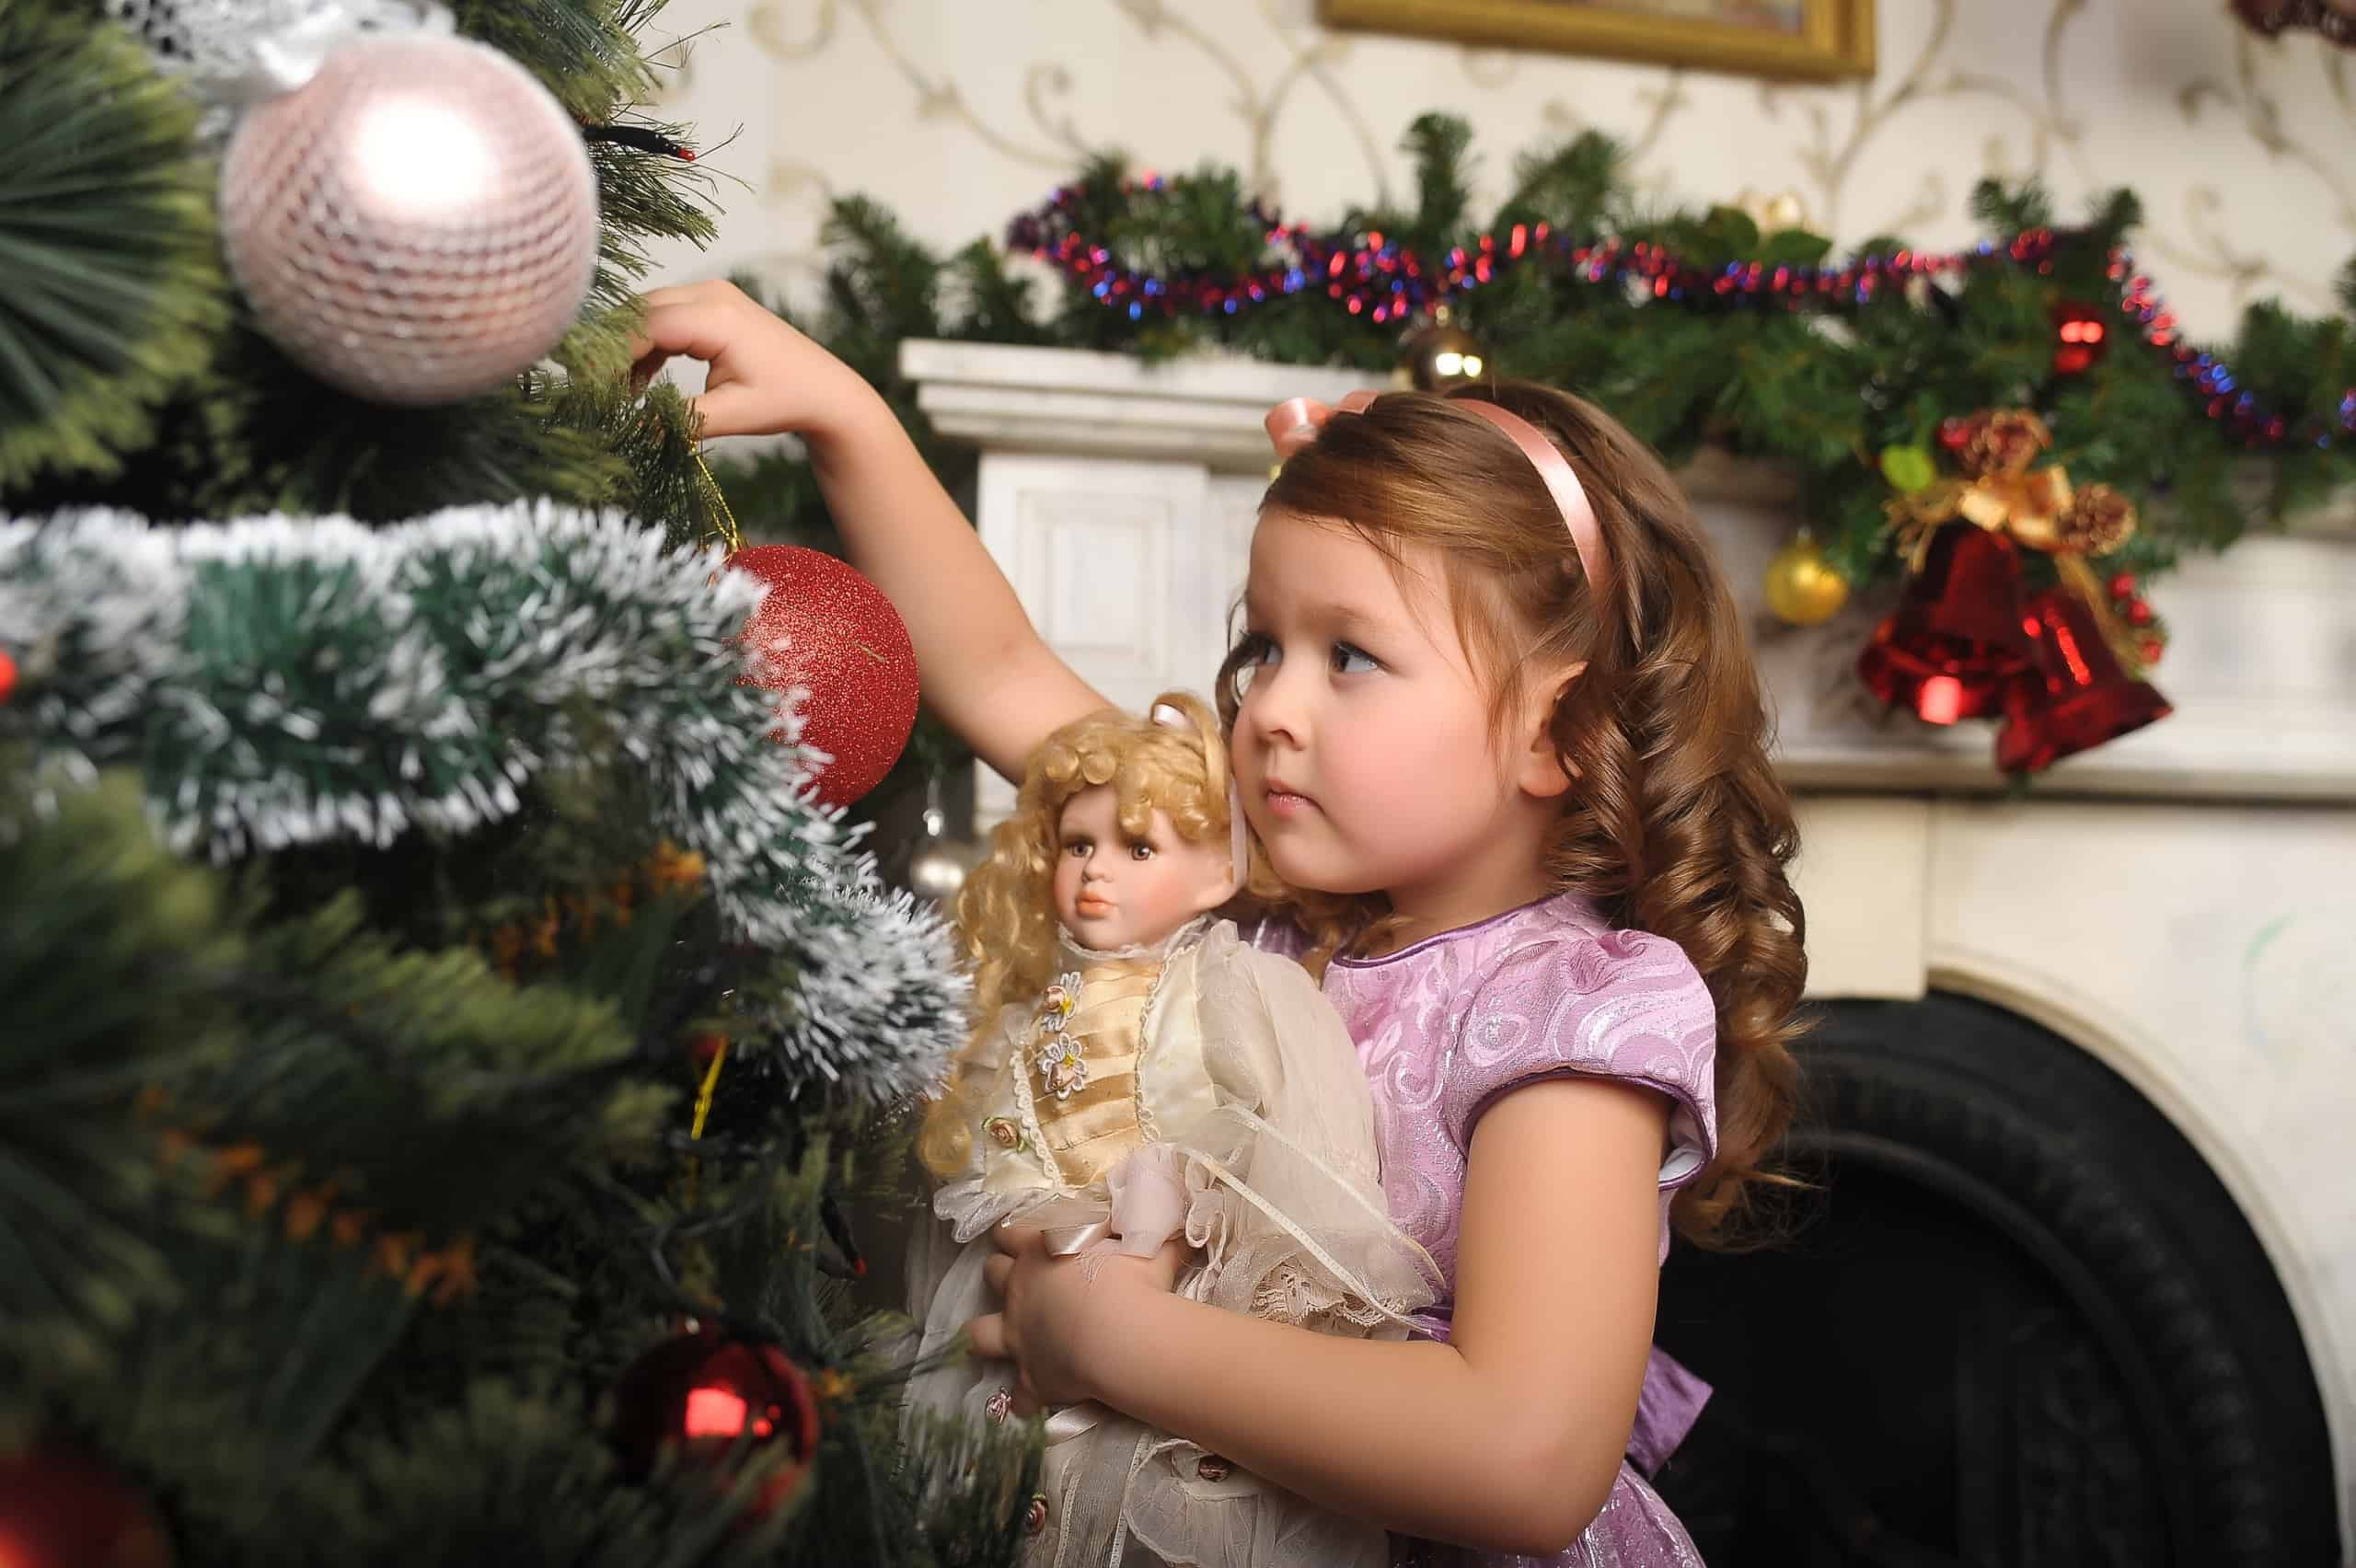 Dolls and Accessories Toys: How Child Benefits from Playing With Dolls